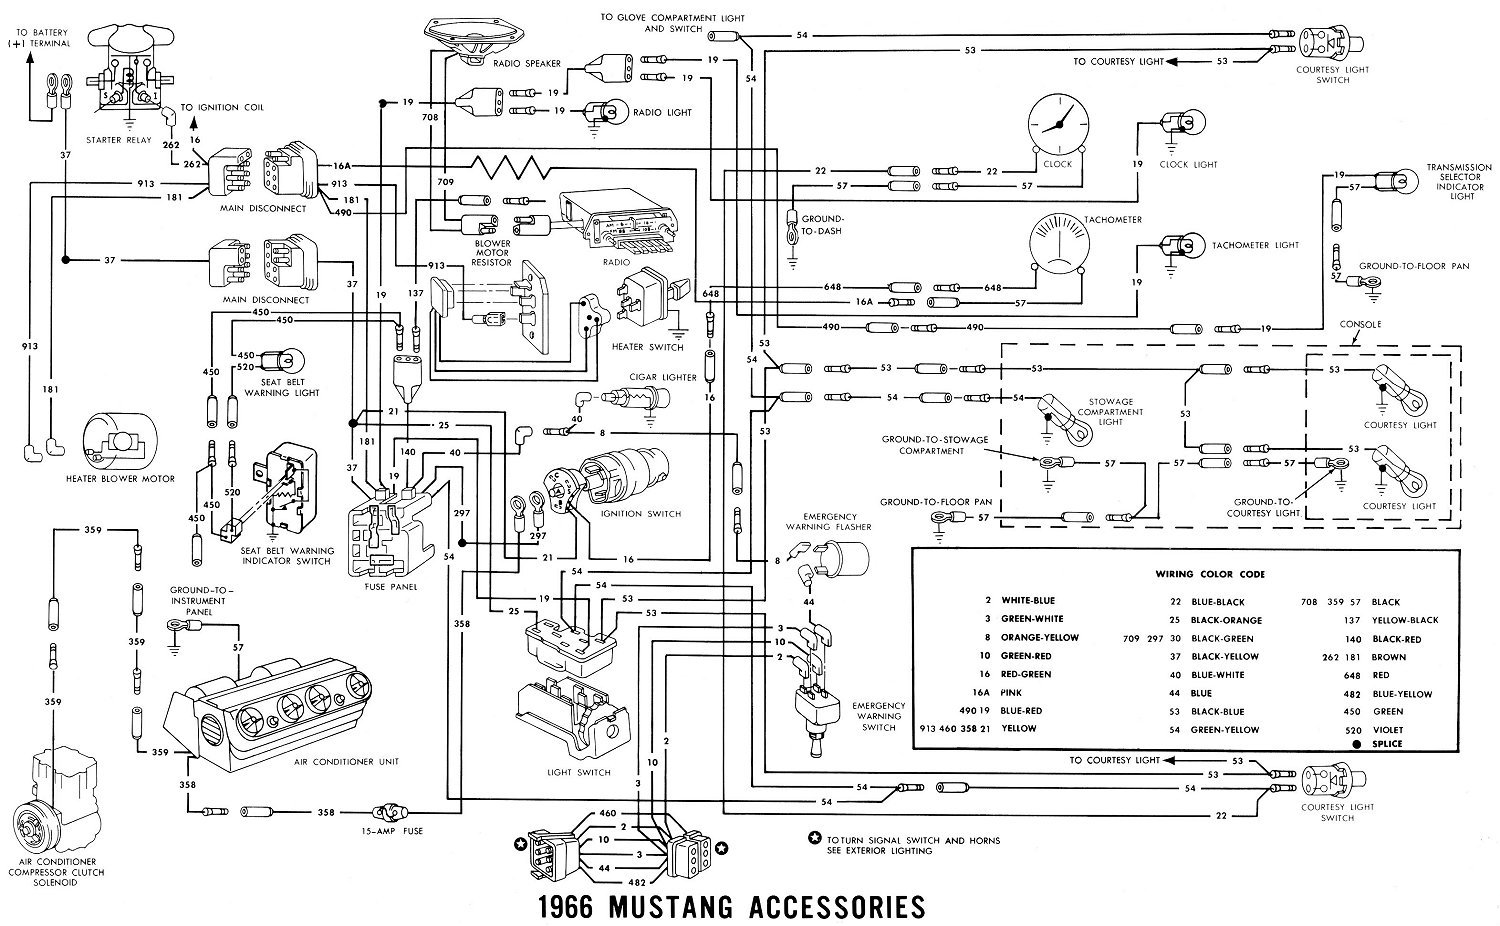 [DIAGRAM_38IS]  66 C Code - Emergency Flasher Switch Location | Ford Mustang Forum | 1966 Mustang Emergency Flasher Wiring Diagram |  | All Ford Mustangs